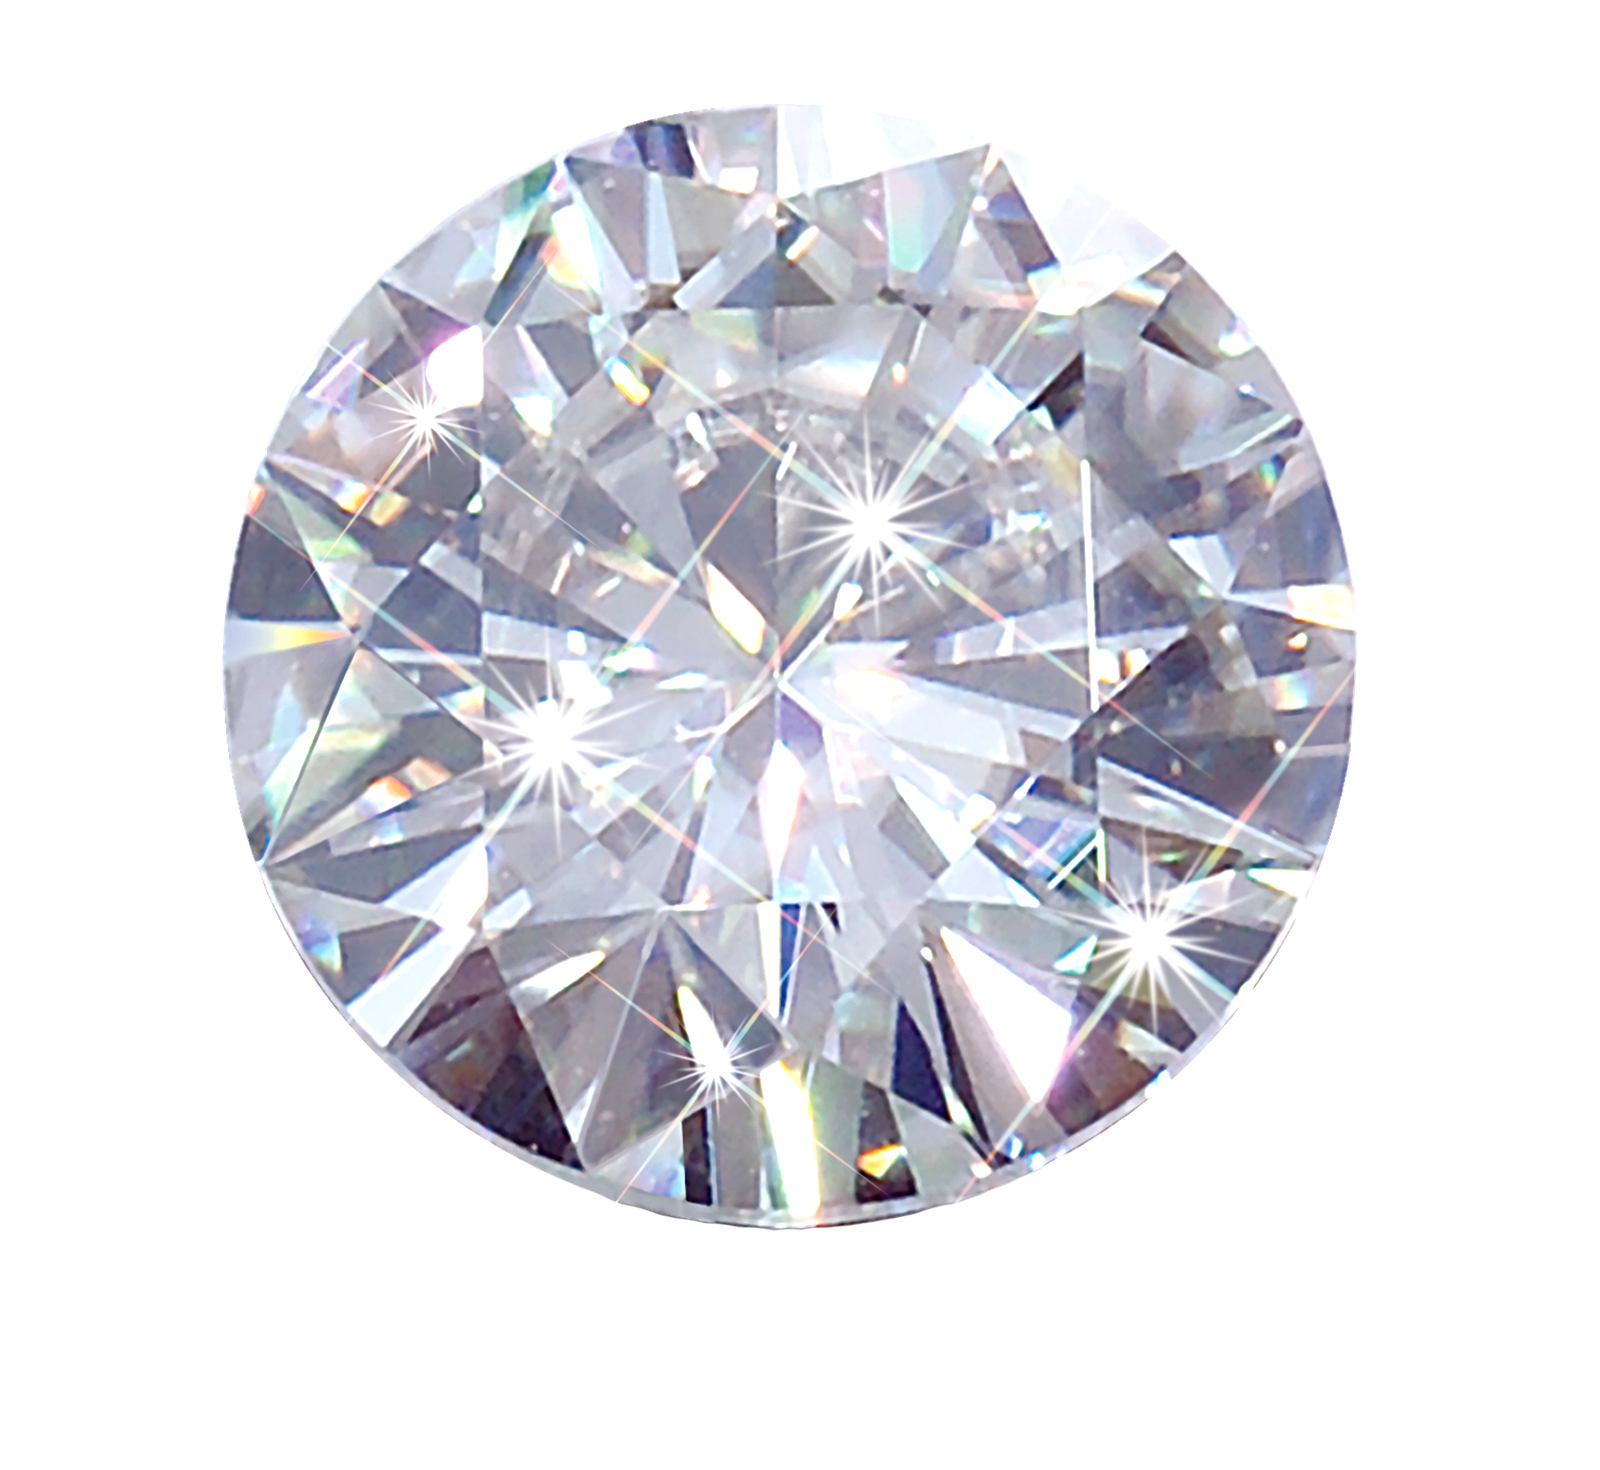 """black singles in diamond Single-cut diamonds are most often used as side stones (also called """"accent stones"""") on bracelets, rings, pendants, earrings, etc  what are diamond black ."""